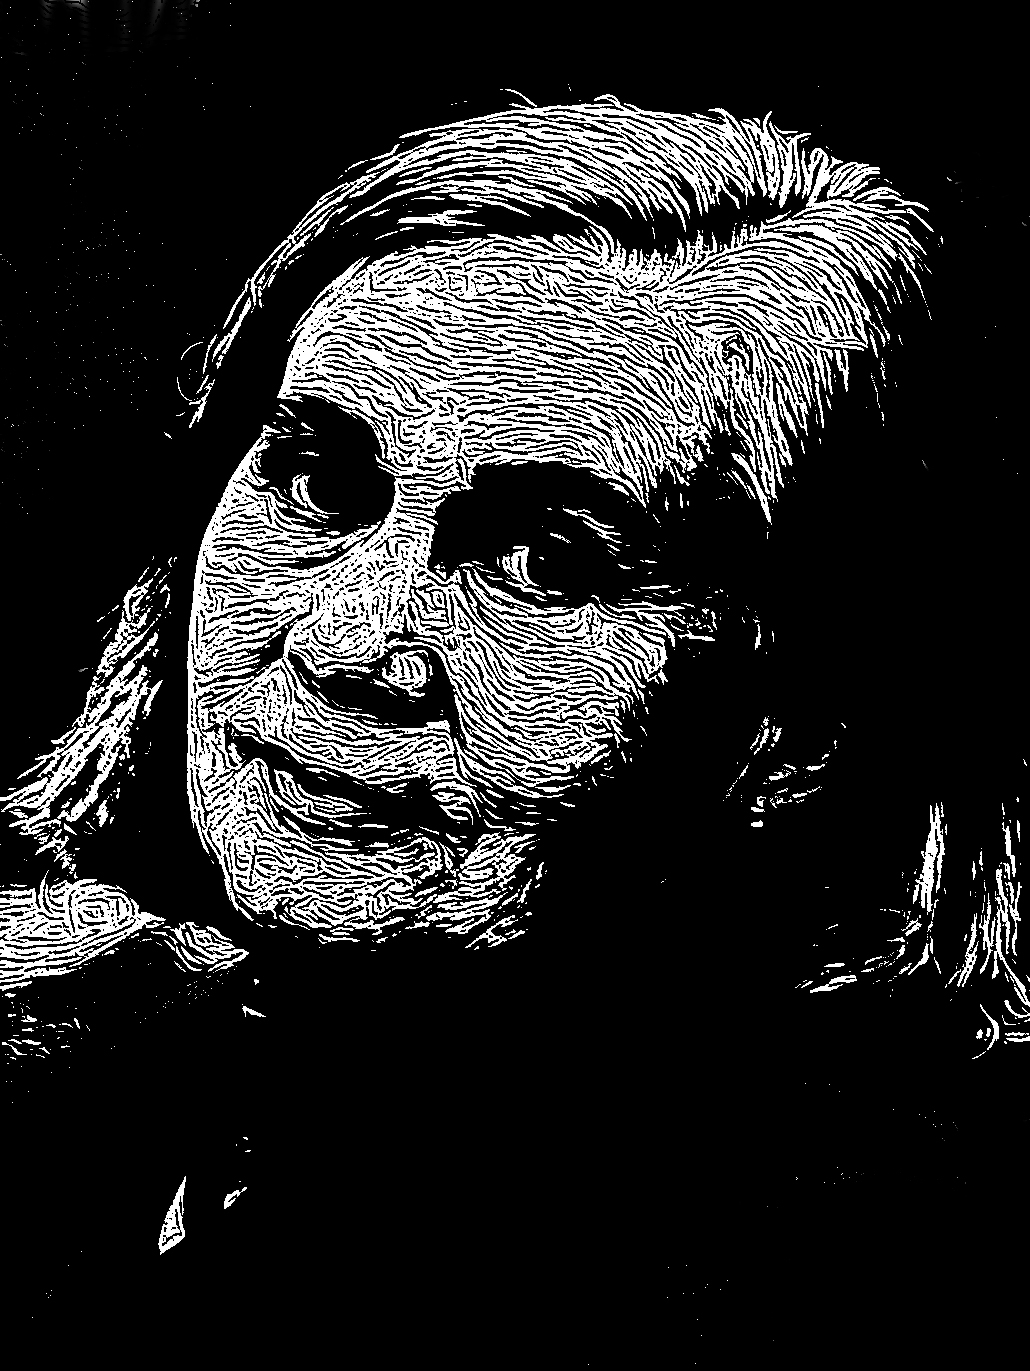 marilynne robinson essays A finalist for the 2016 pen/diamonstein-spielvogel award for the art of the essay one of time magazine's best nonfiction books of the year the spirit of our times can appear to be one of joyless urgency as a culture we have become less interested in the exploration of the glorious mind, and more interested in creating.